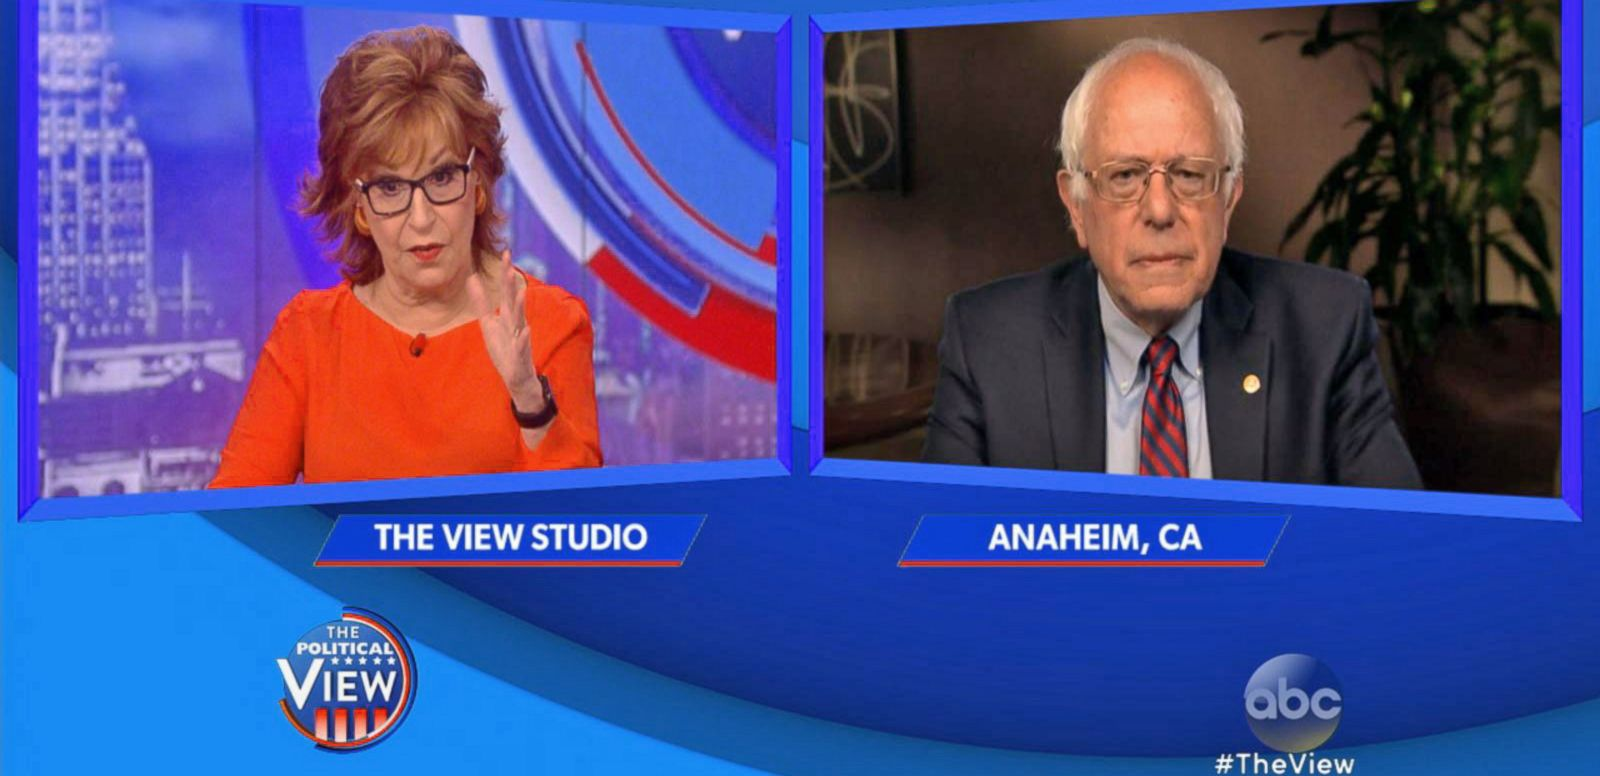 VIDEO: Bernie Sanders Answers Joy Behar Questions About Clinton Attacks